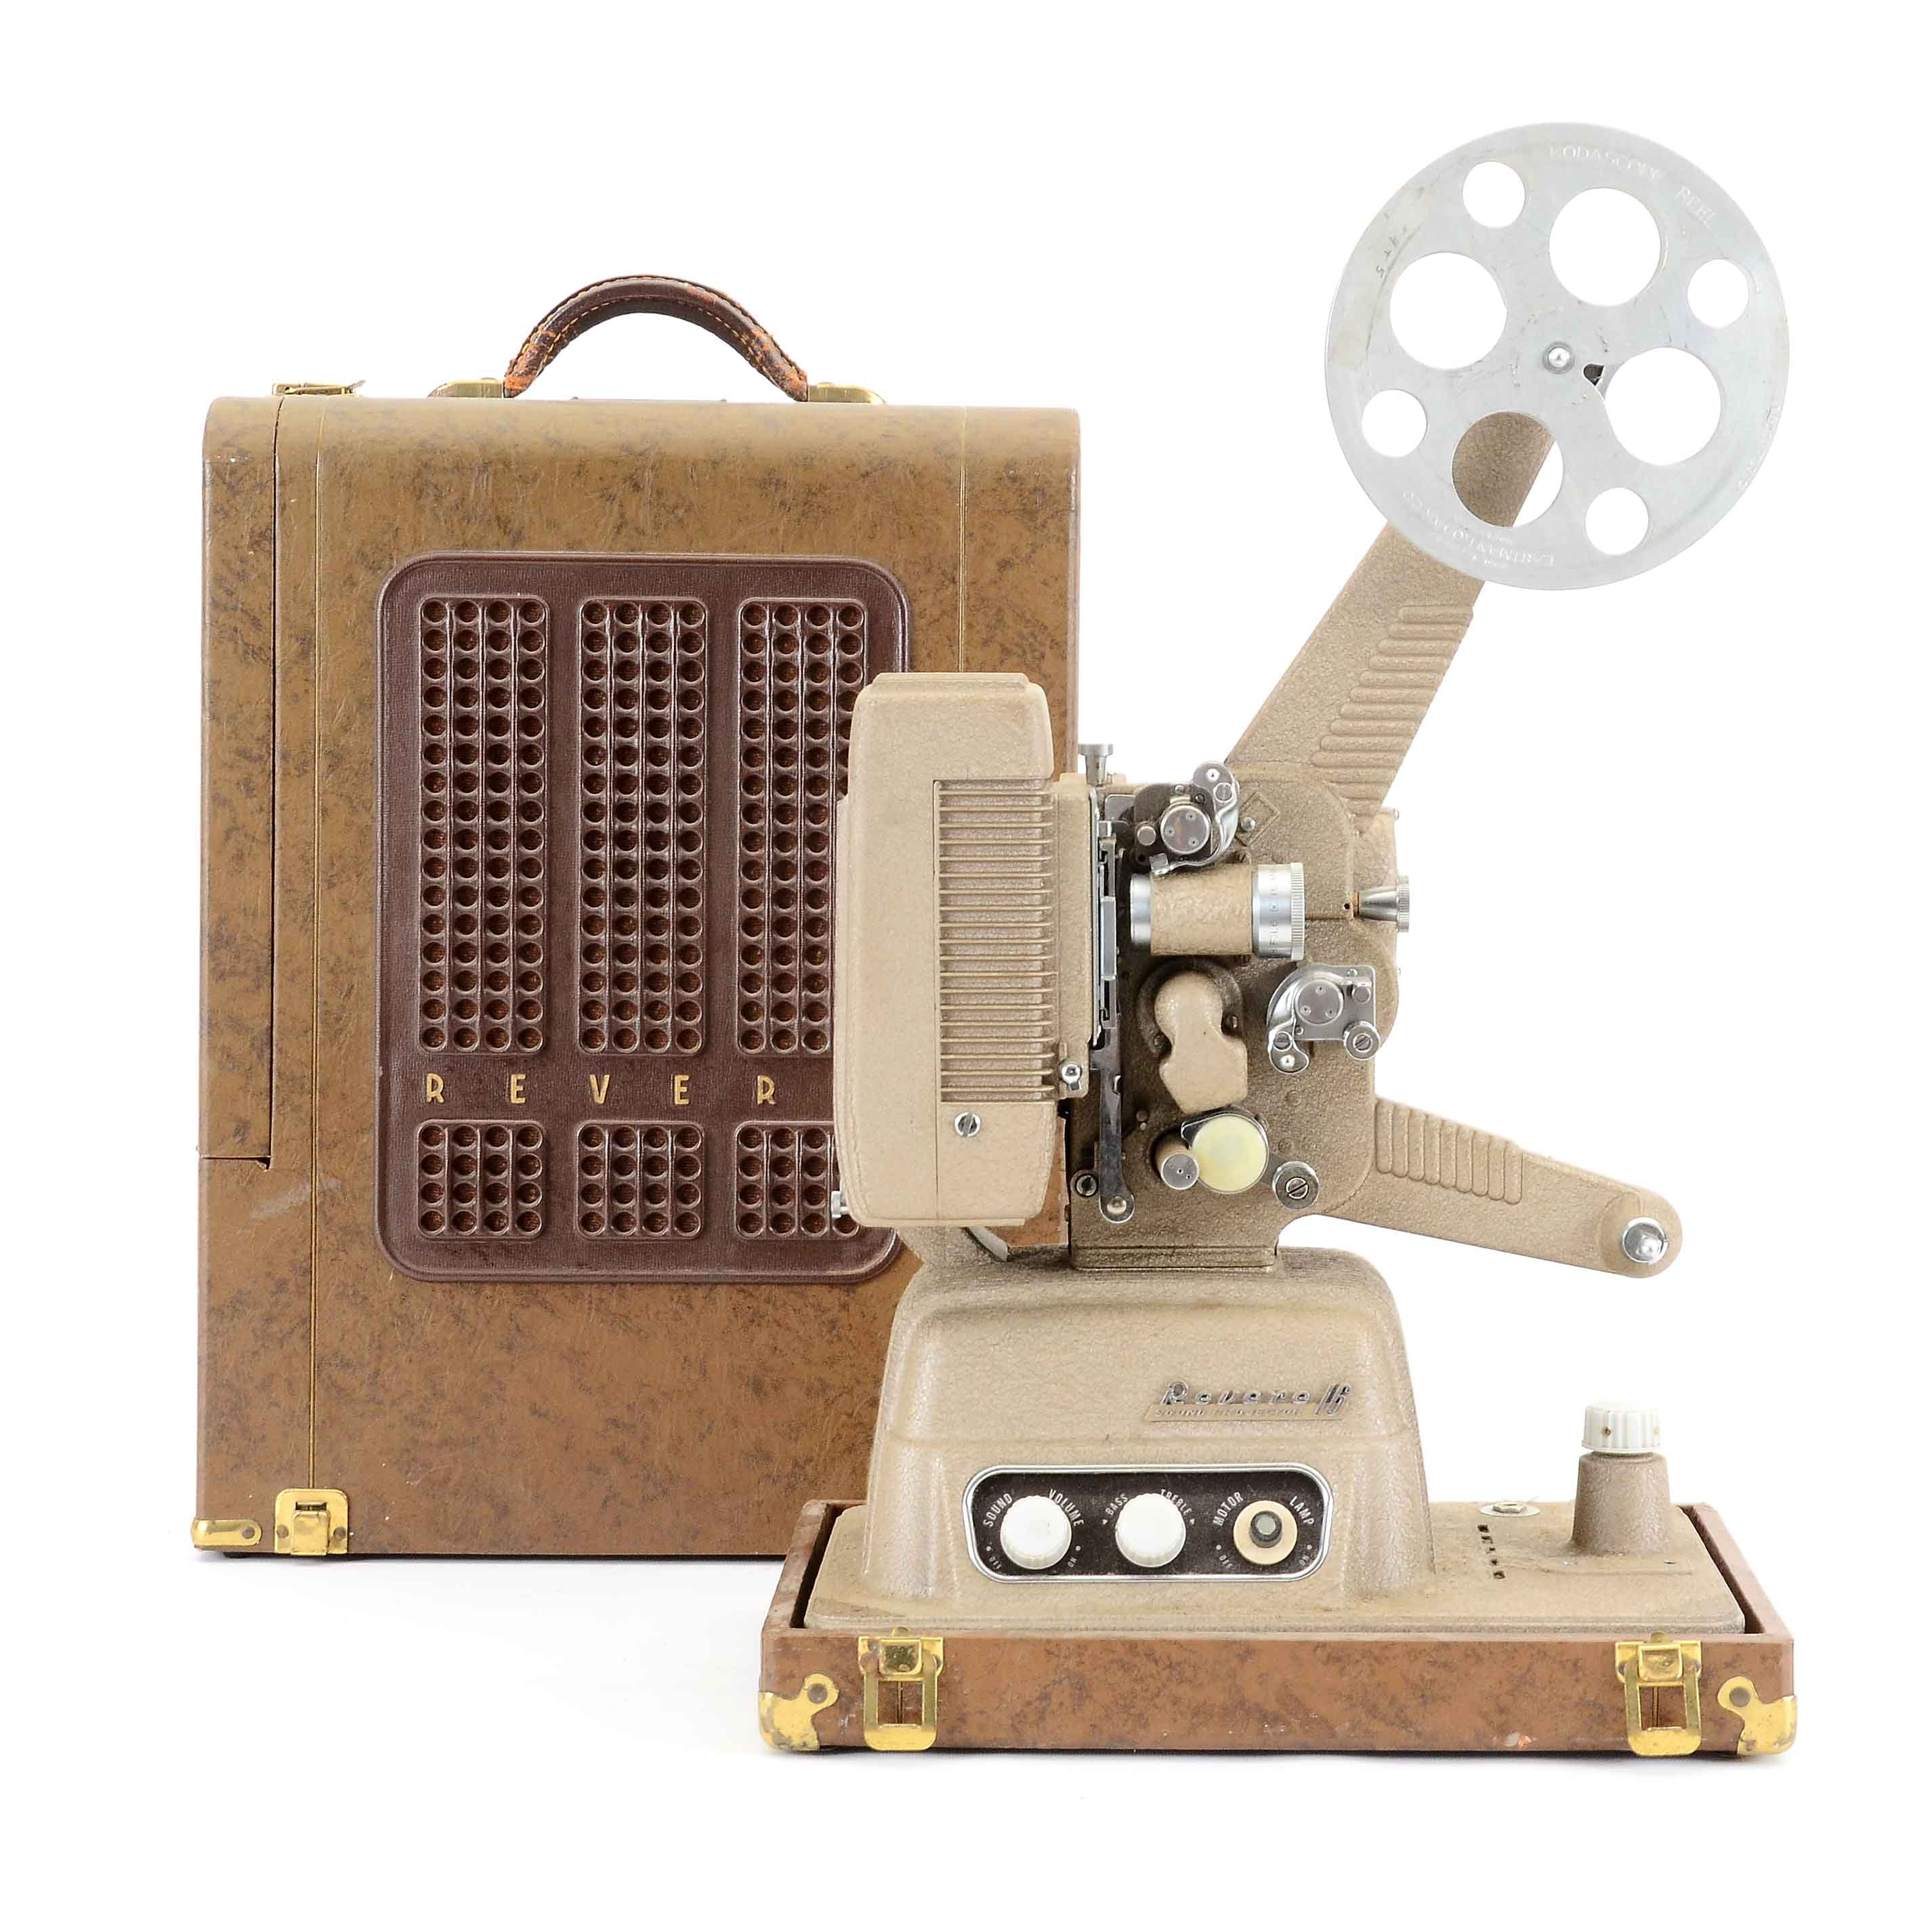 Revere 16mm Projector with case